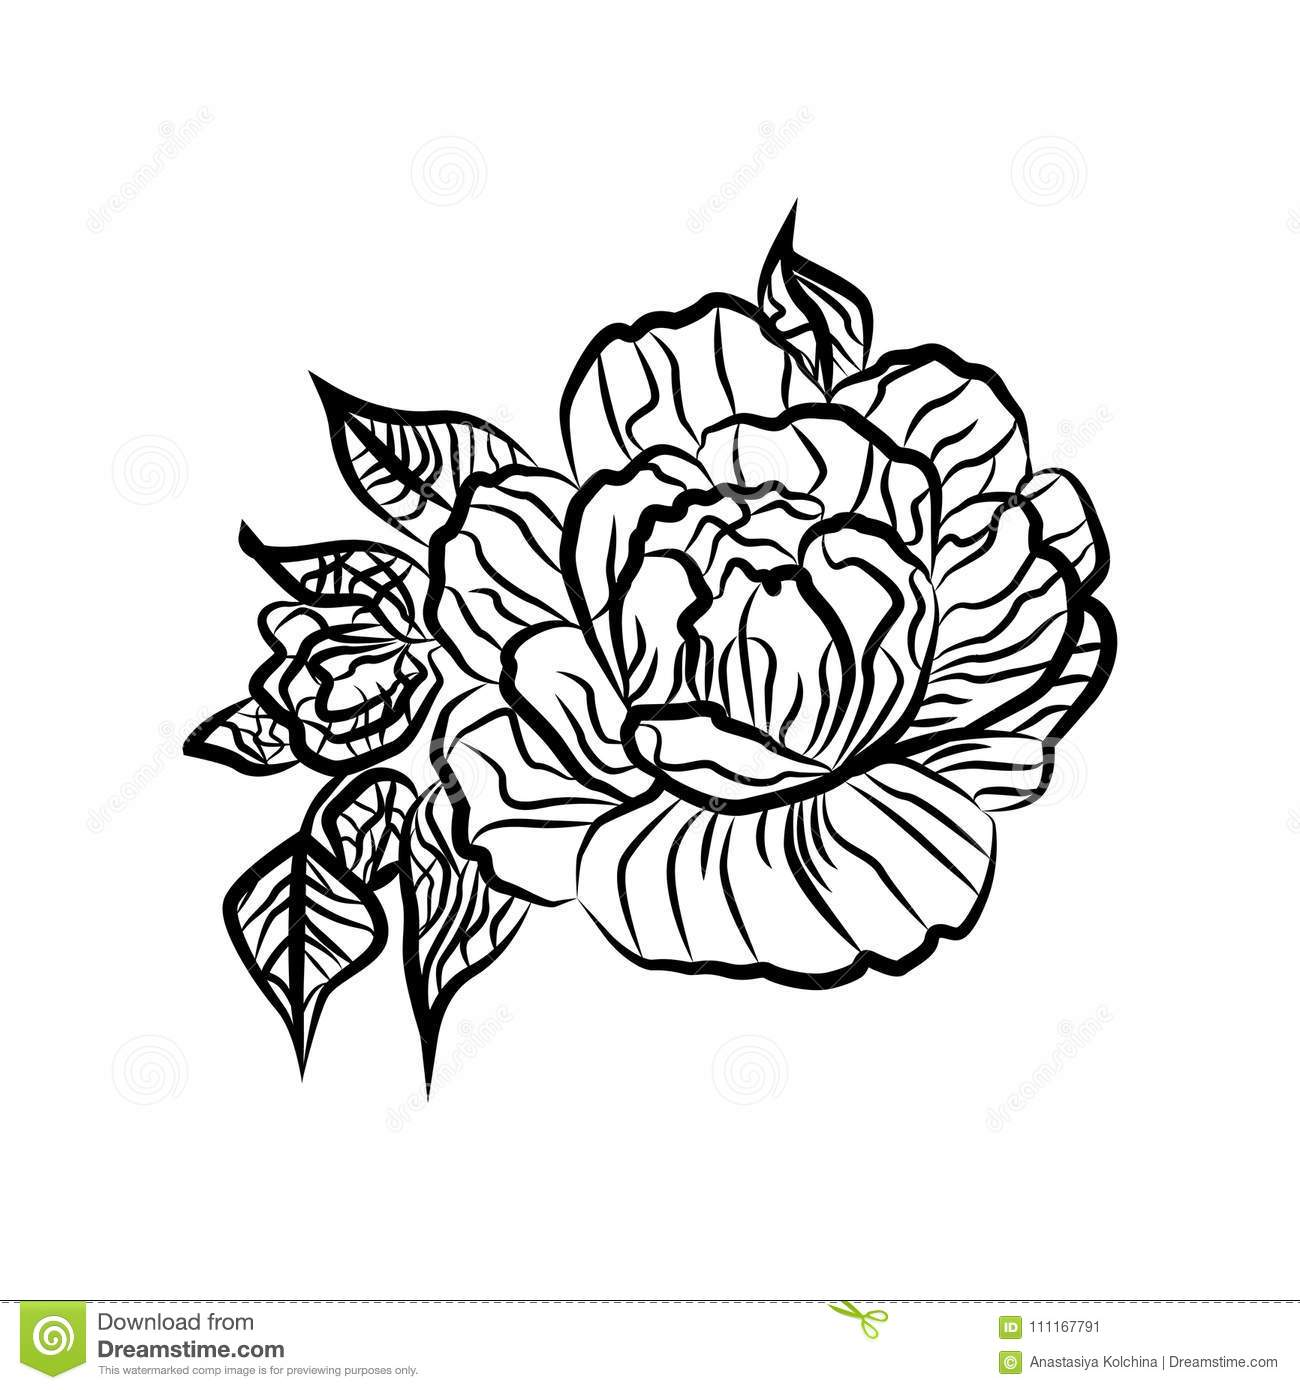 Black and white drawing of a rose tattoo silhouette of branch with flowers of roses